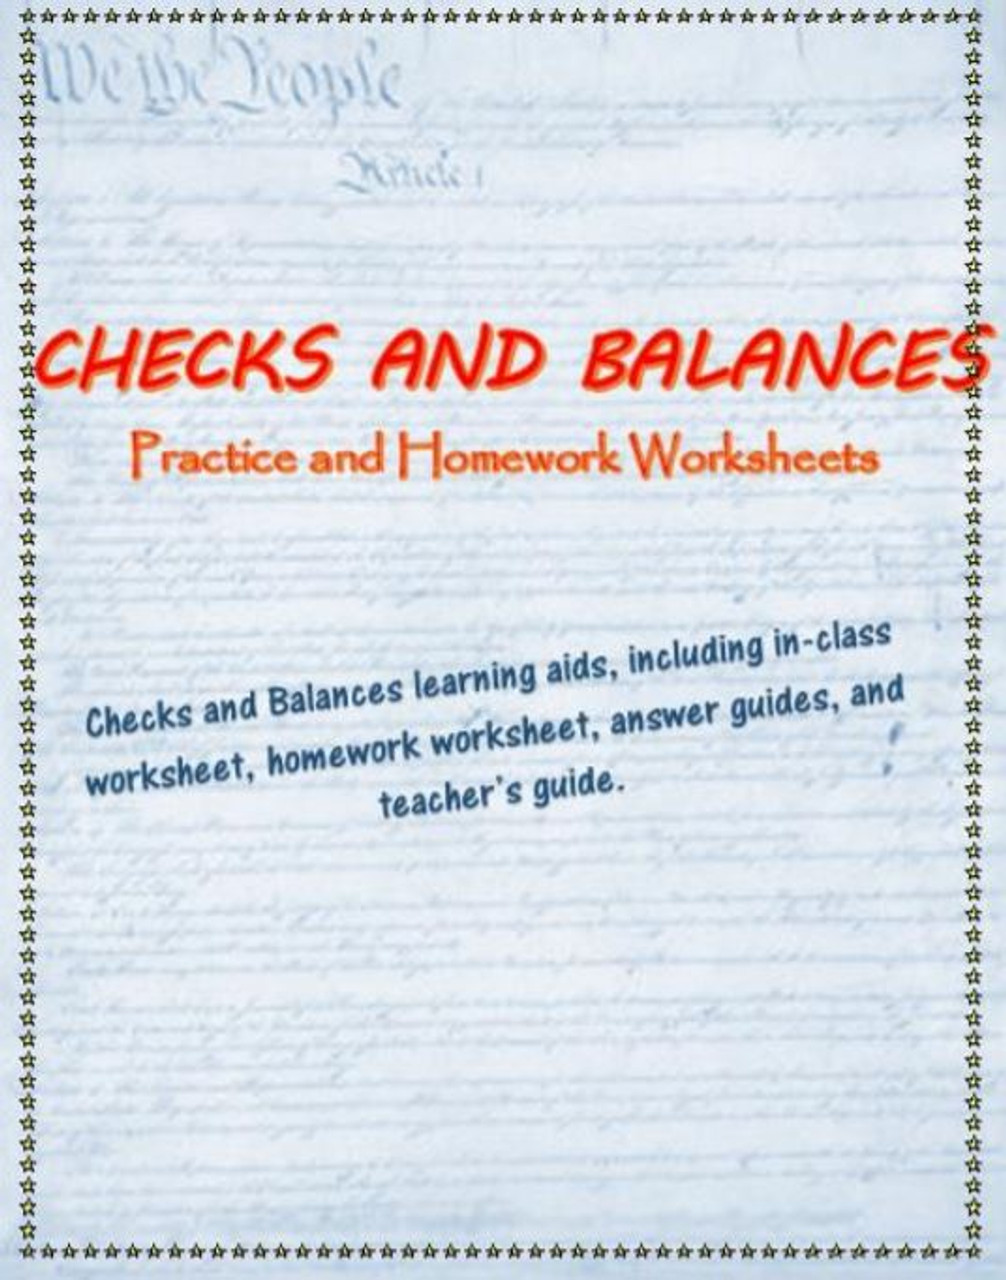 Checks and Balances practice worksheets